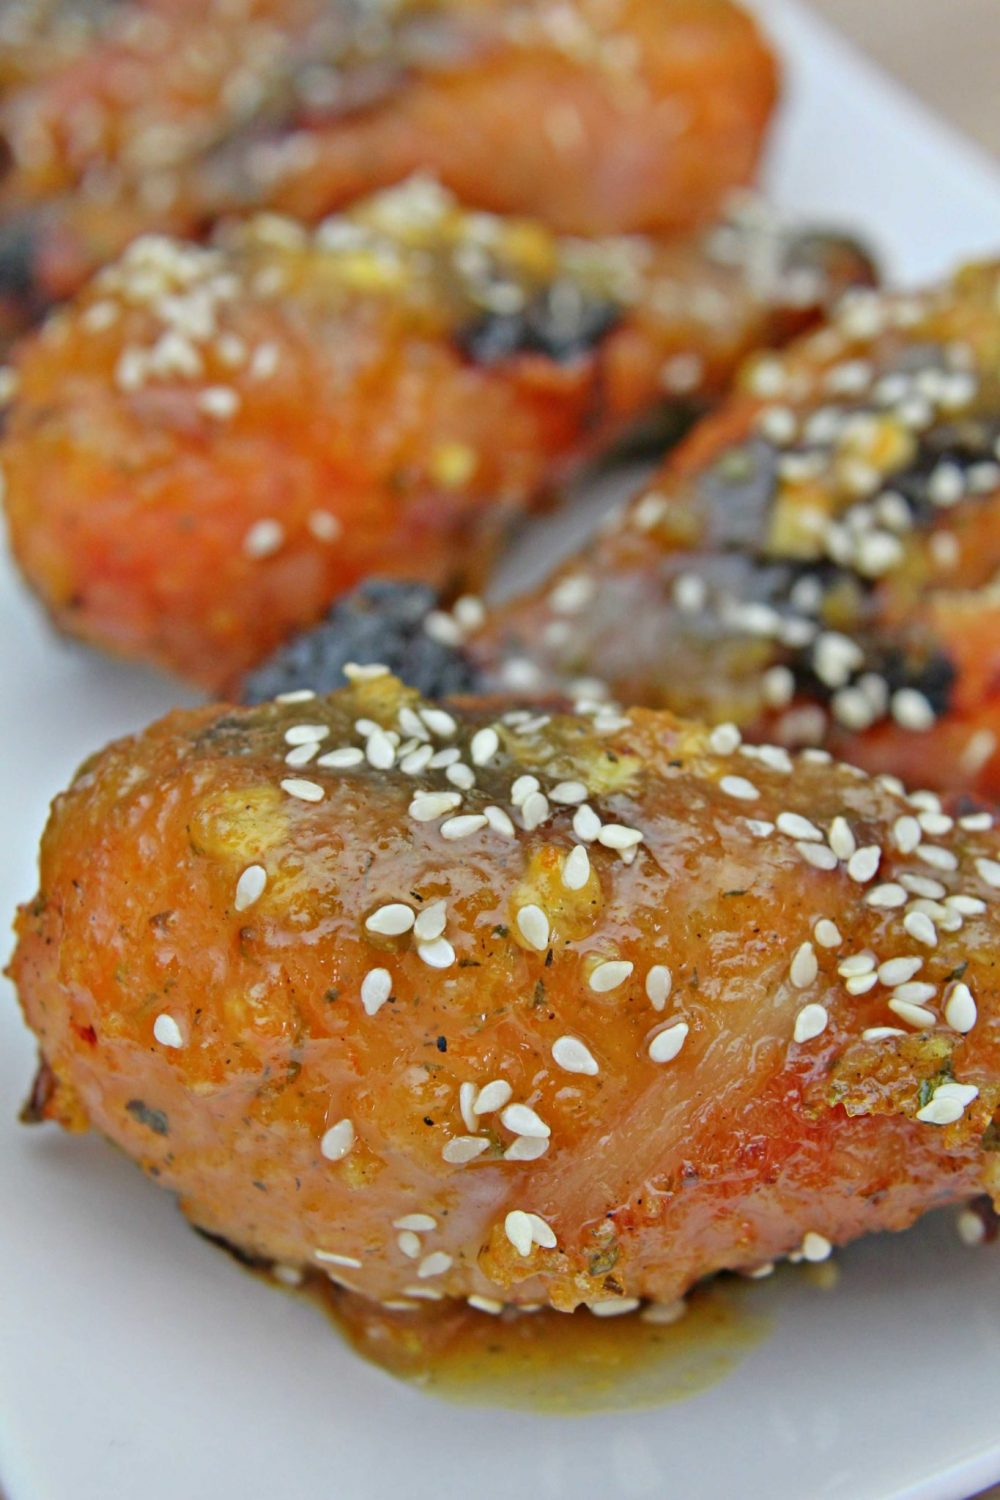 Orange chicken drumsticks baked in the oven and sprinkled with sesame seeds